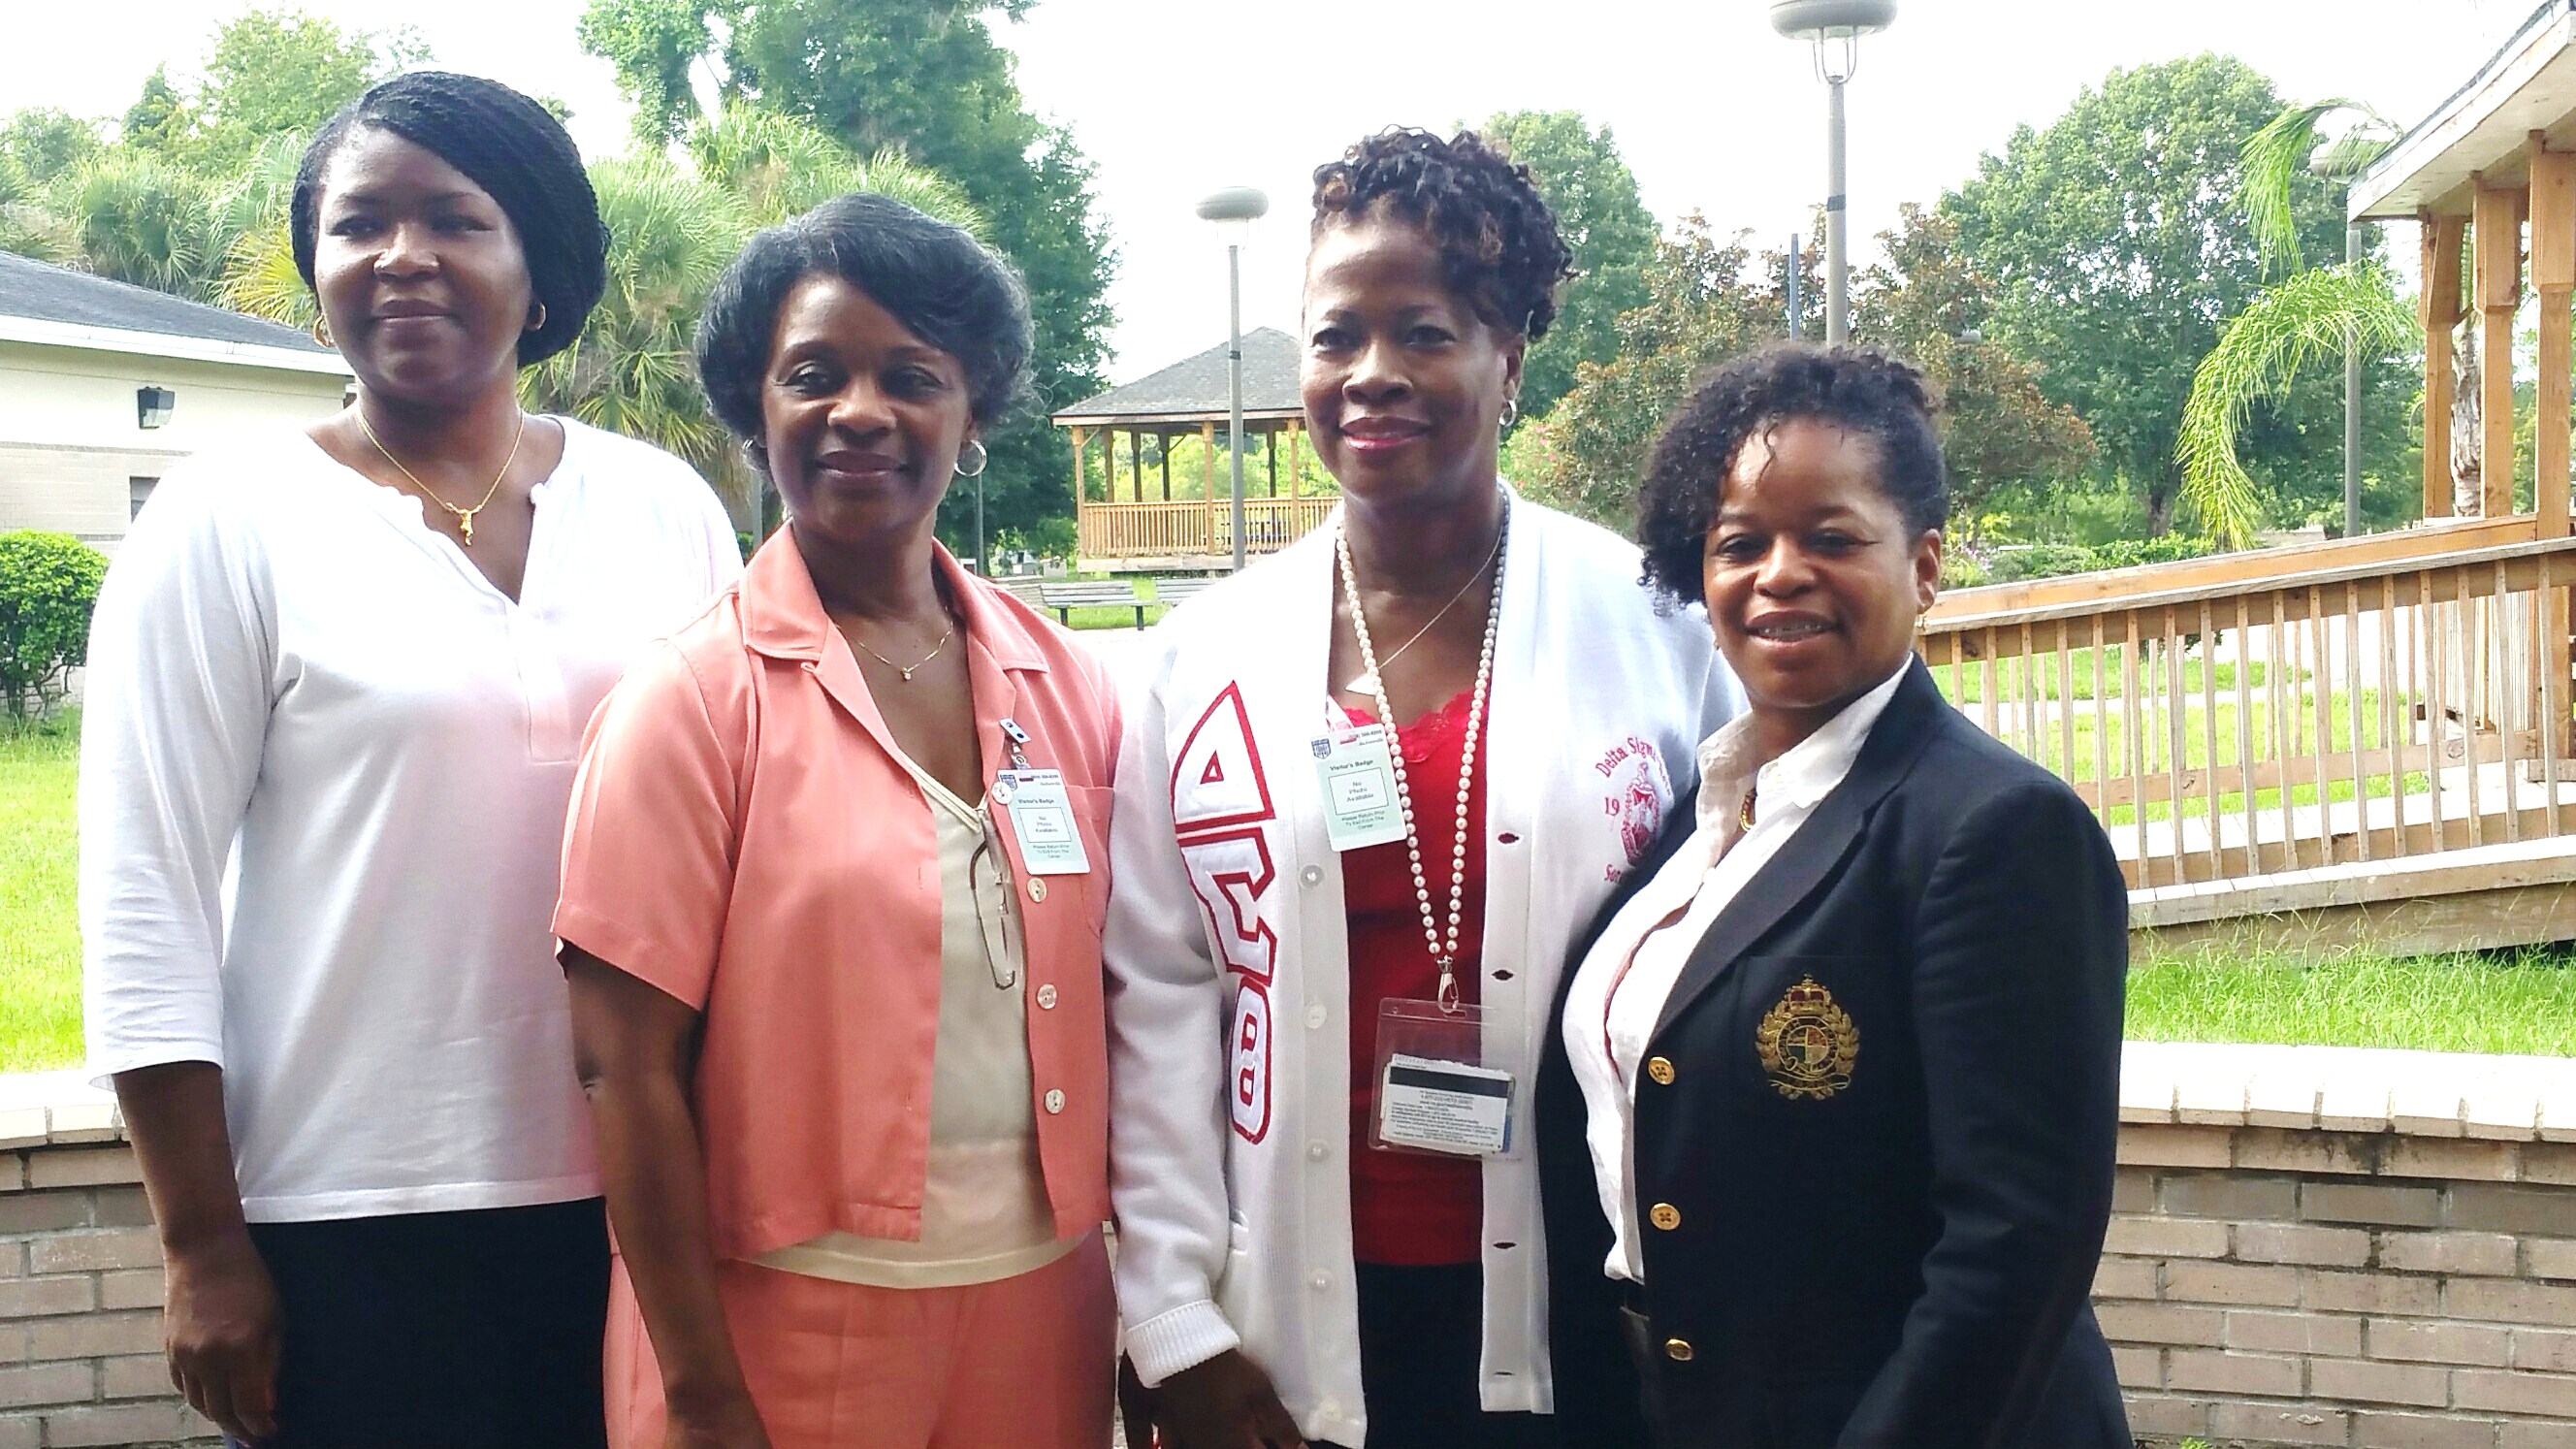 Guest presenters includedVeronica Tutt (retired Master Chief E-9), Vathrice Hartwell (retired US Navy-Captain) and Jacqueline Moise (recently retired Senior Chief E-8).